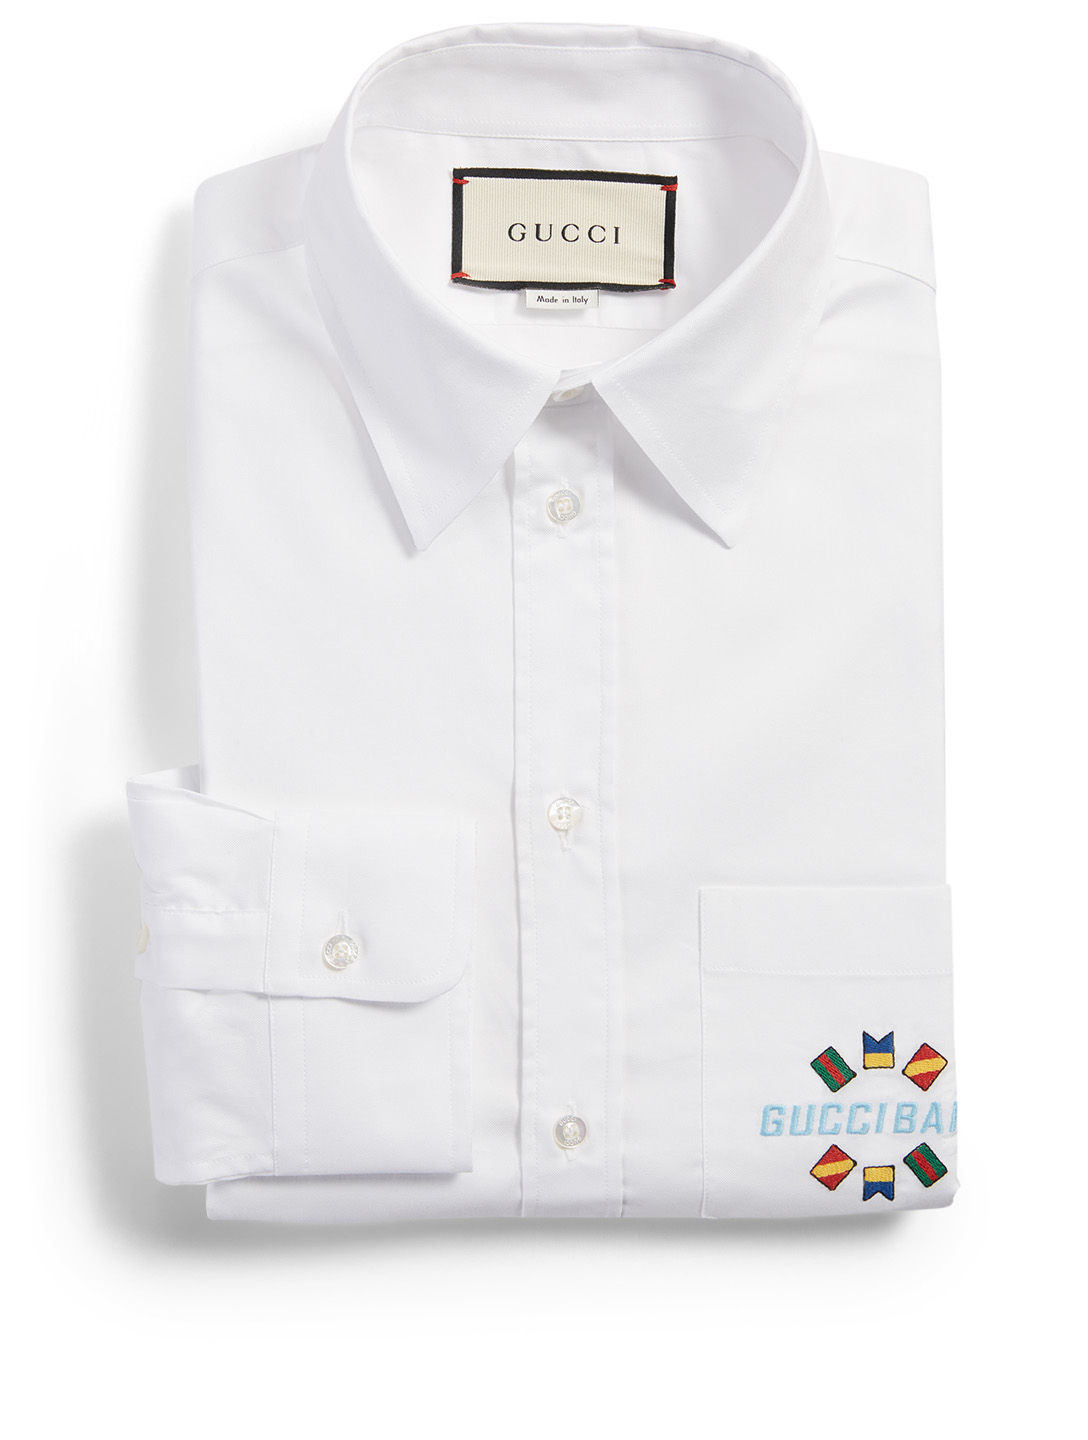 GUCCI Cotton Shirt With GG Crest Men's White